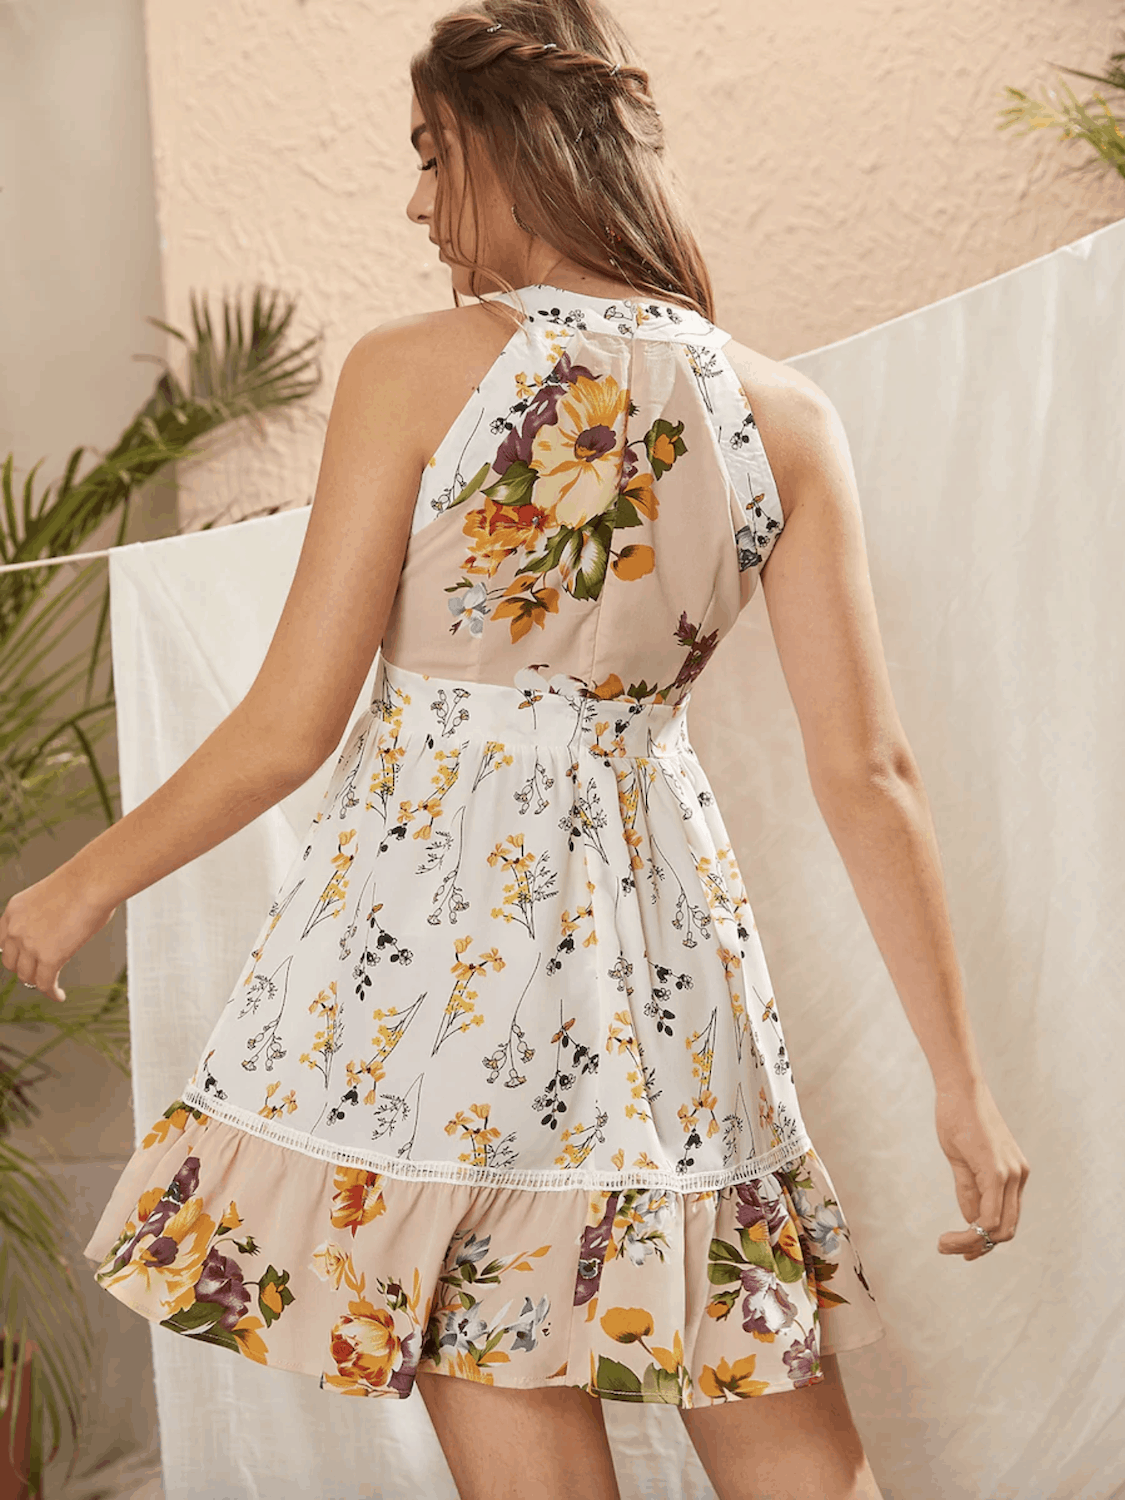 Summer Honeymoon Outfits for Her Floral Print Sleeveless Halter Dress 3